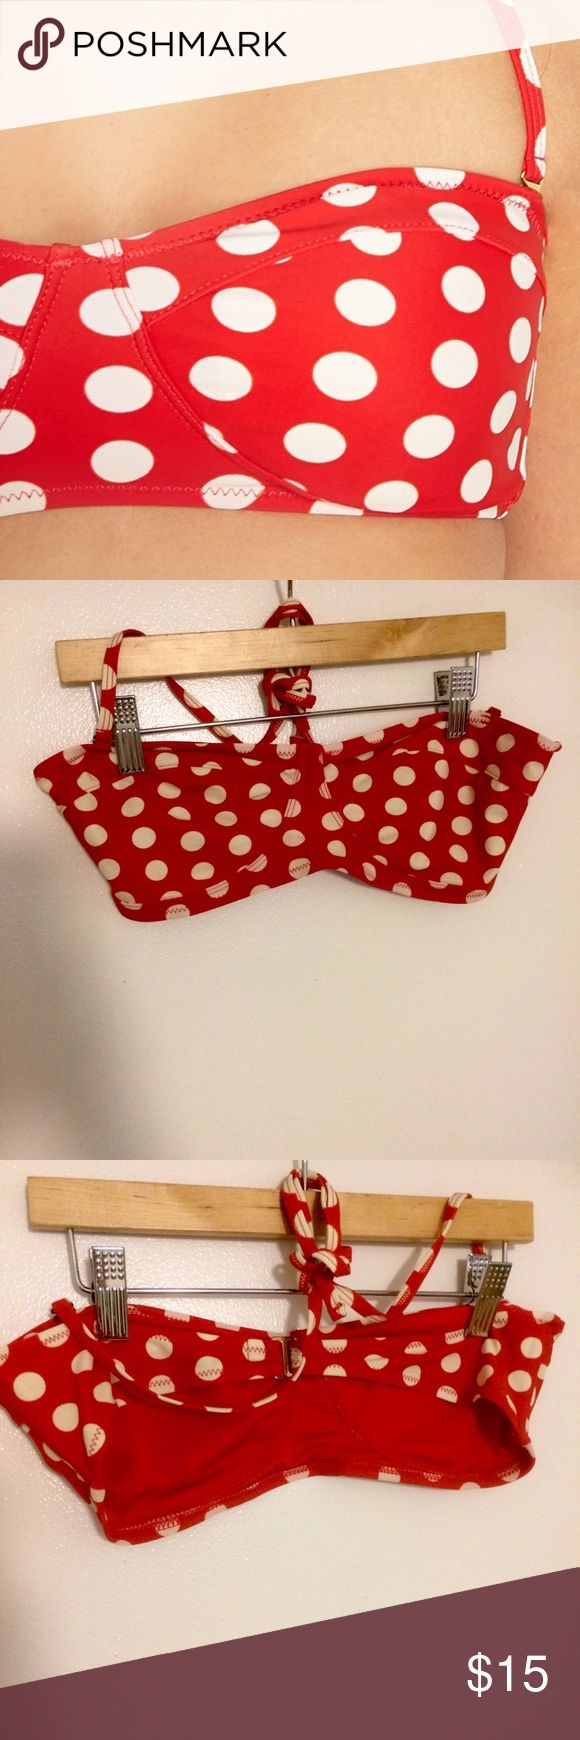 Forever 21 red polka dot retro bandeau bikini top This pinup girl retro style bikini top is from Forever 21, and has only been worn one time! With a red and white polka dot pattern, you're sure to feel picture perfect this Season. Size Medium. Padding removed. Forever 21 Swim Bikinis